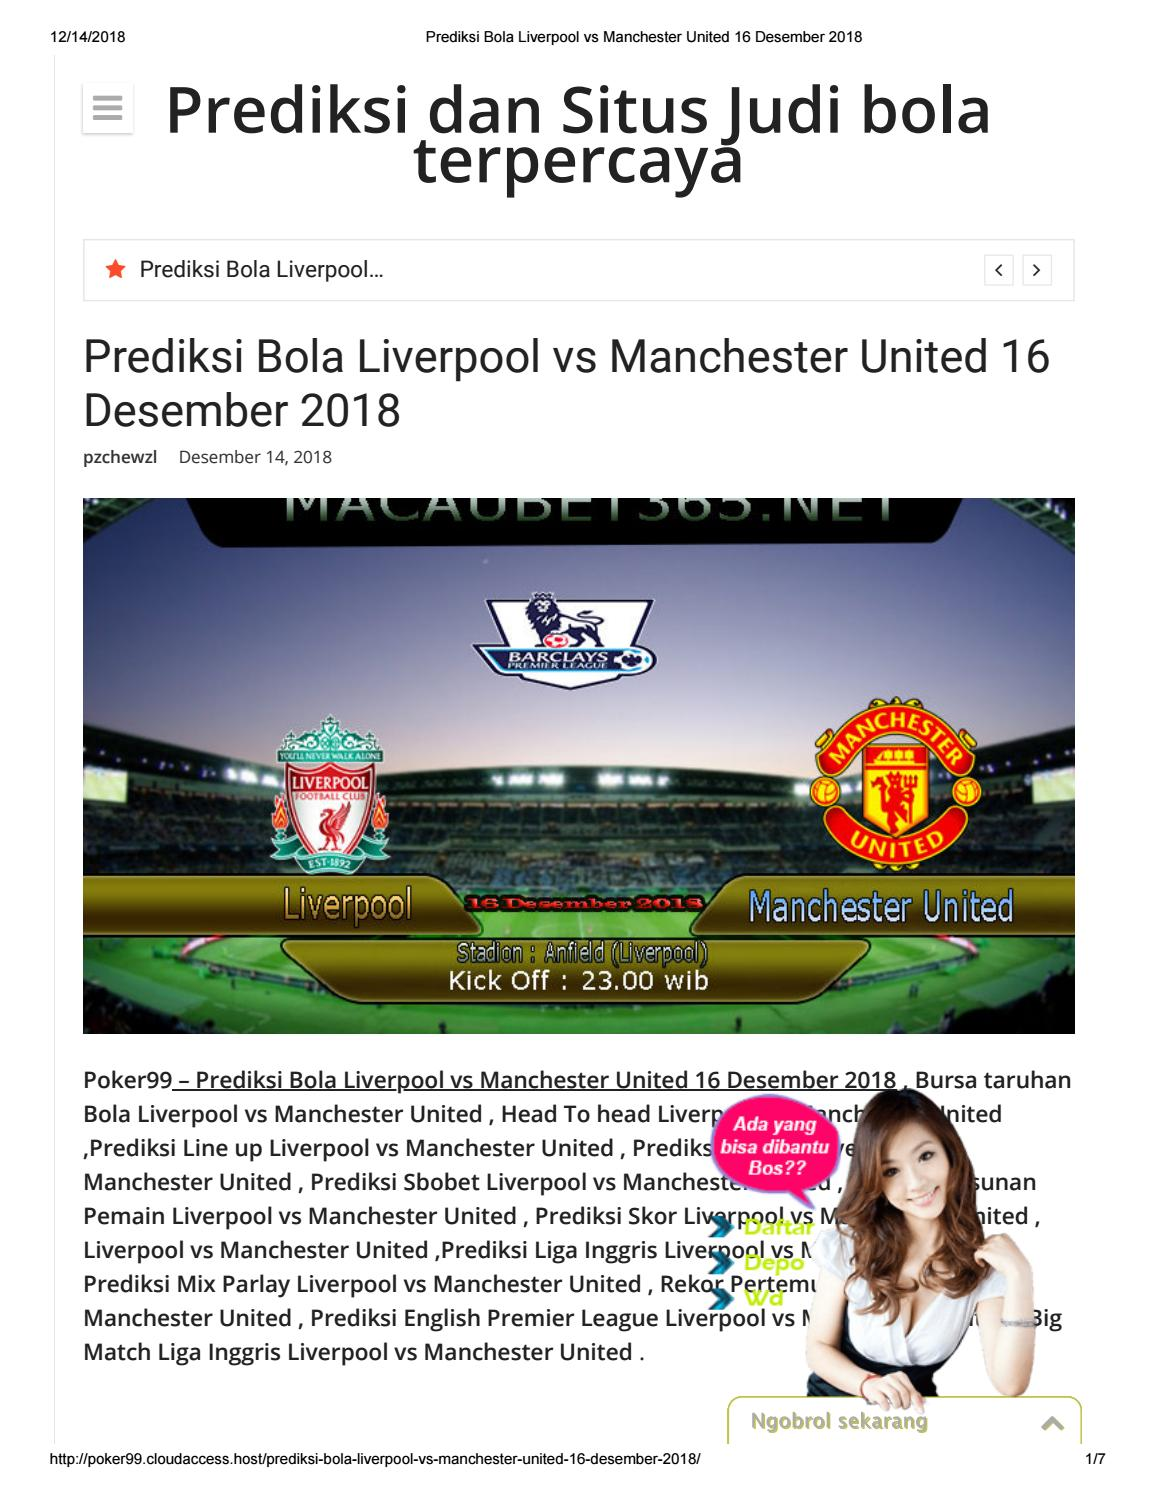 Prediksi Bola Liverpool Vs Manchester United 16 12 2018 By